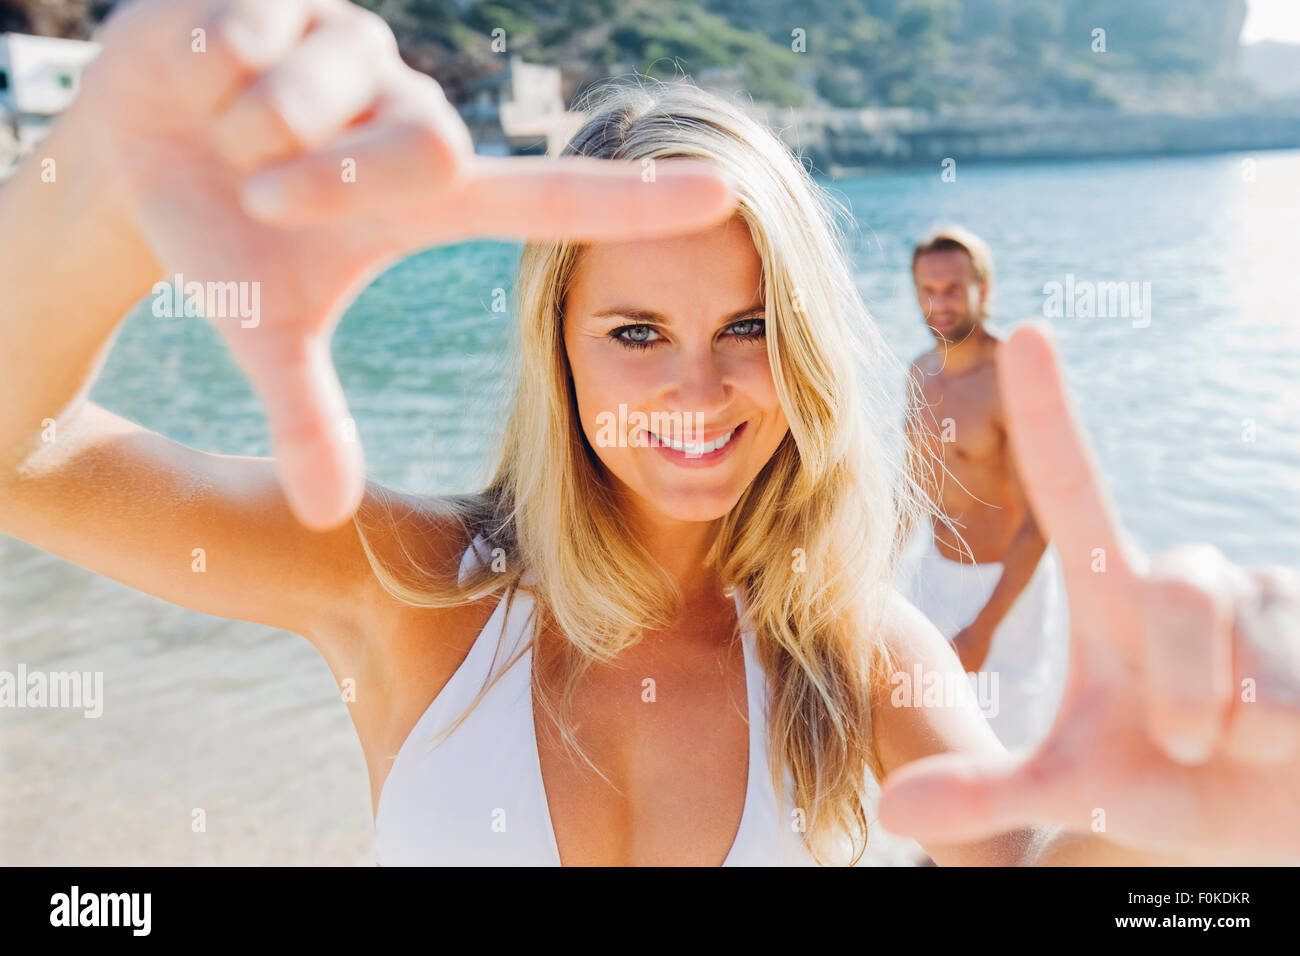 Spain, Majorca, smiling woman in bikini on the beach making a finger frame - Stock Image